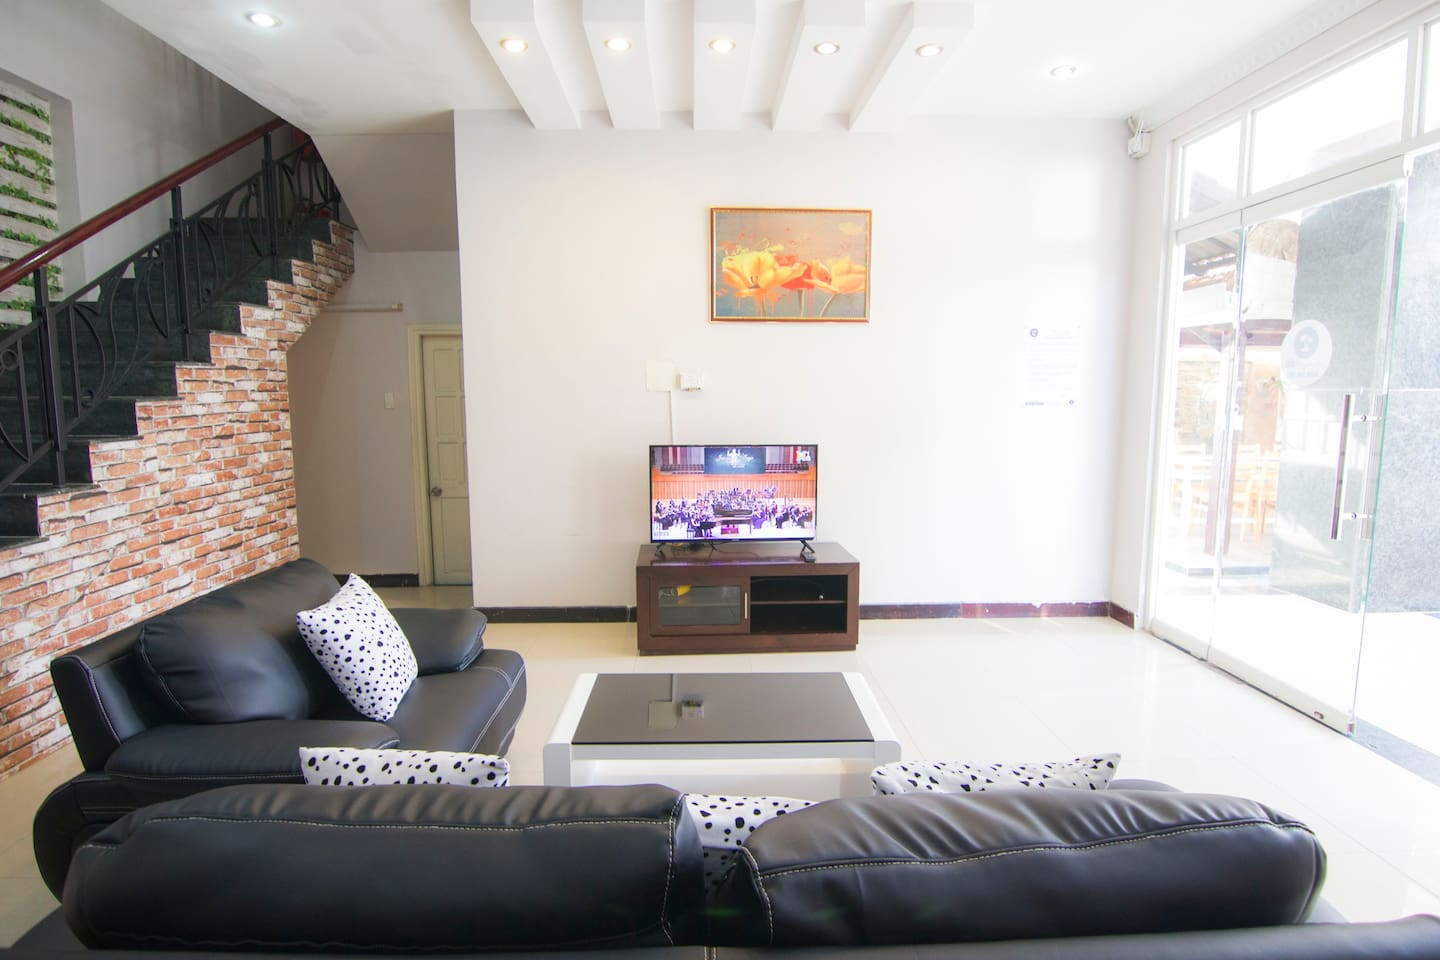 Vung Tau Villa Ali 5B has a modern spacious living room in ground floor with TV, sofa,..